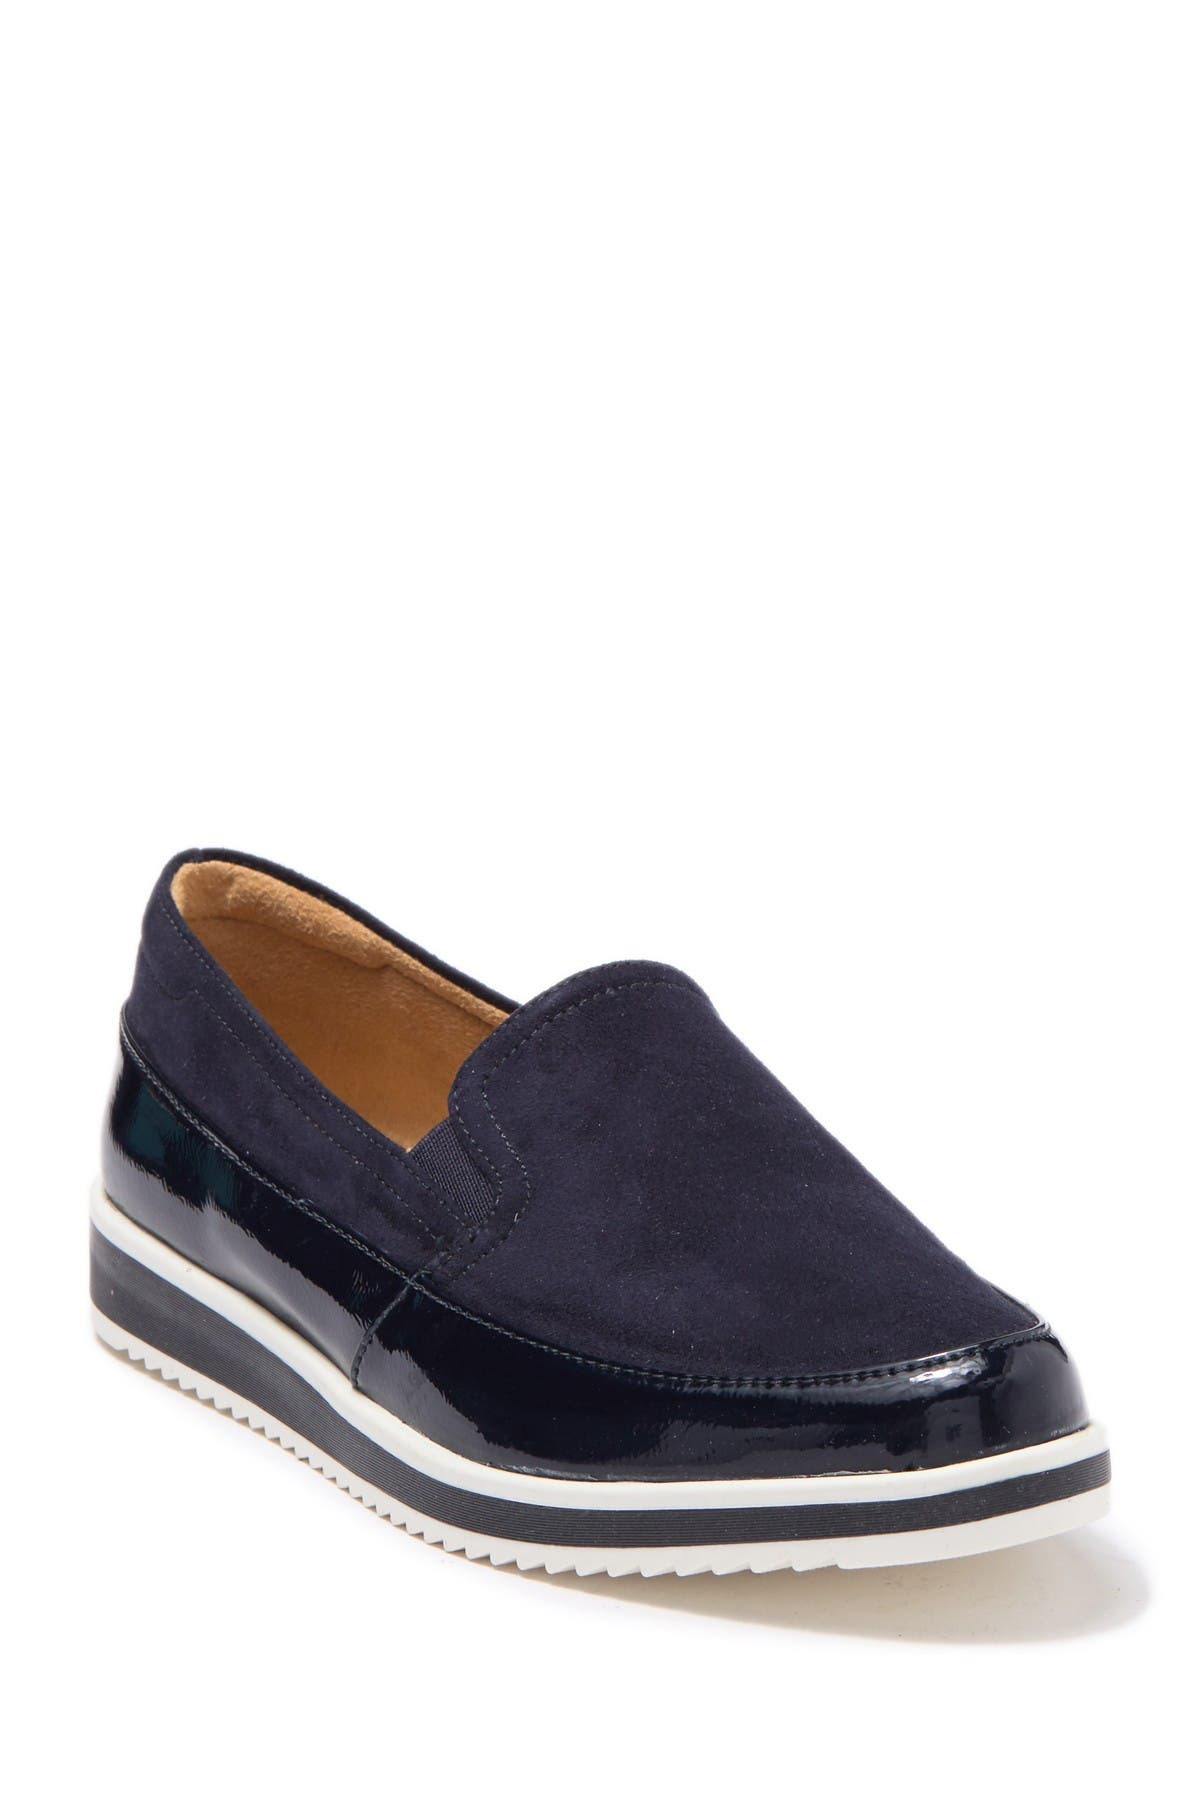 Image of Naturalizer Rome Slip-On Sneaker